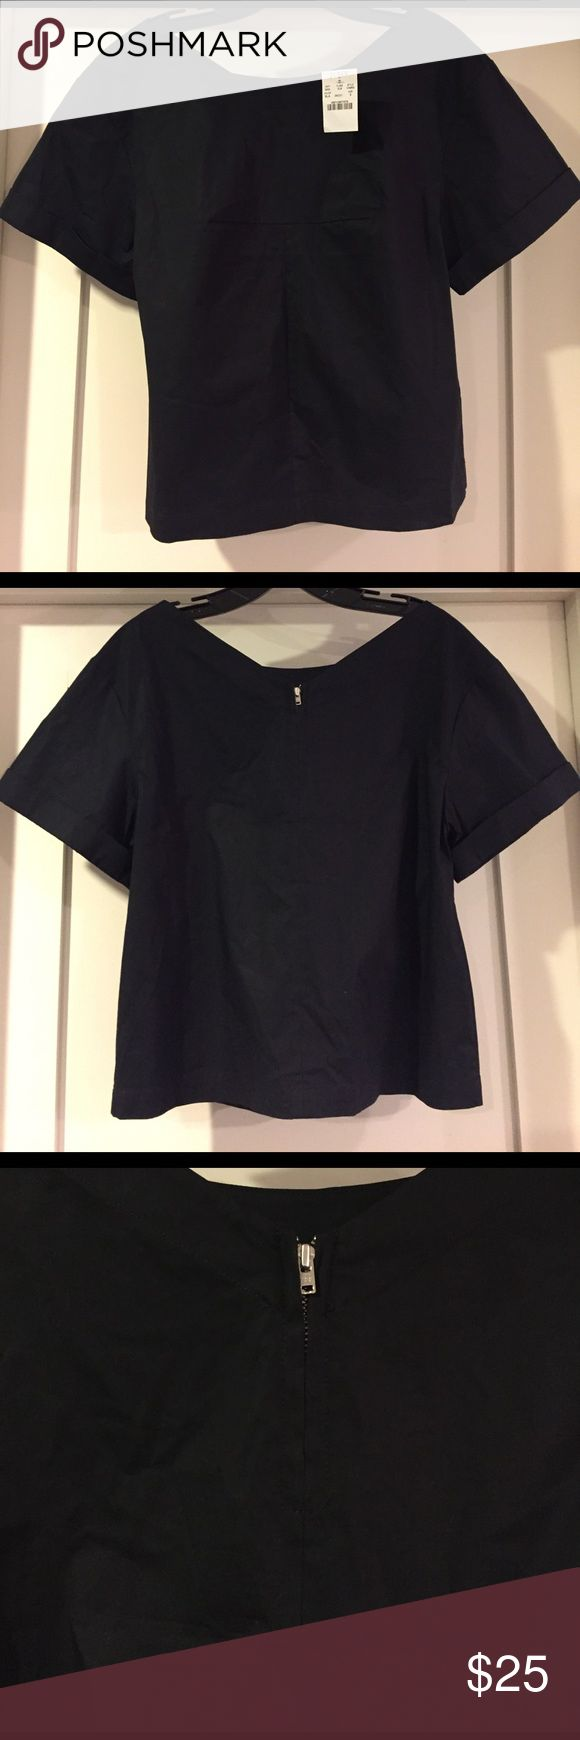 J Crew beautifully cut top with cute zipper detail NWT J Crew top in black. Very pretty and special cut to this top. Appreciated more in person to see cut. Has slight stretch to it. So cute with skinny jeans or leggings and heels/booties. Dress up with statement necklace or earrings. Very clean lines and slightly cropped. Please ask all questions before buying. J. Crew Tops Blouses